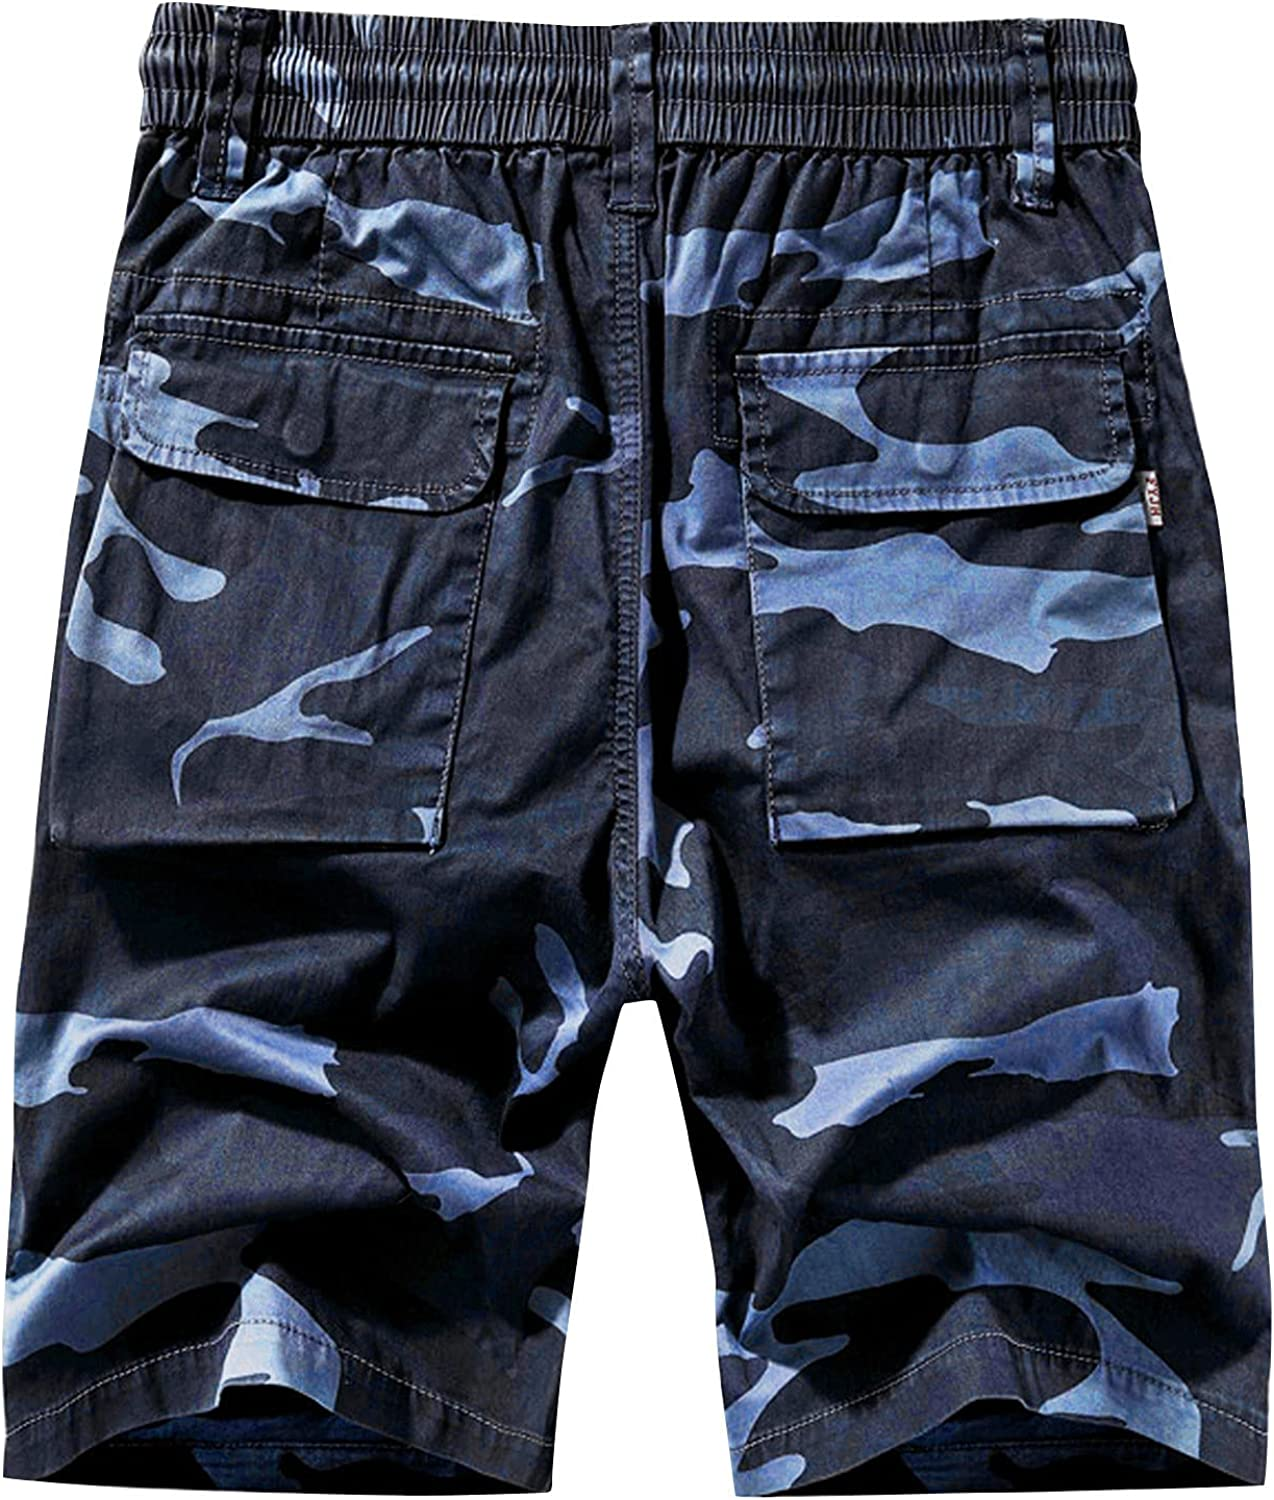 Mens Pure Color Cargo Shorts Relaxed Fit Multi-Pocket Outdoor Camouflage Shorts Cotton Work Trouser Outdoor Overalls